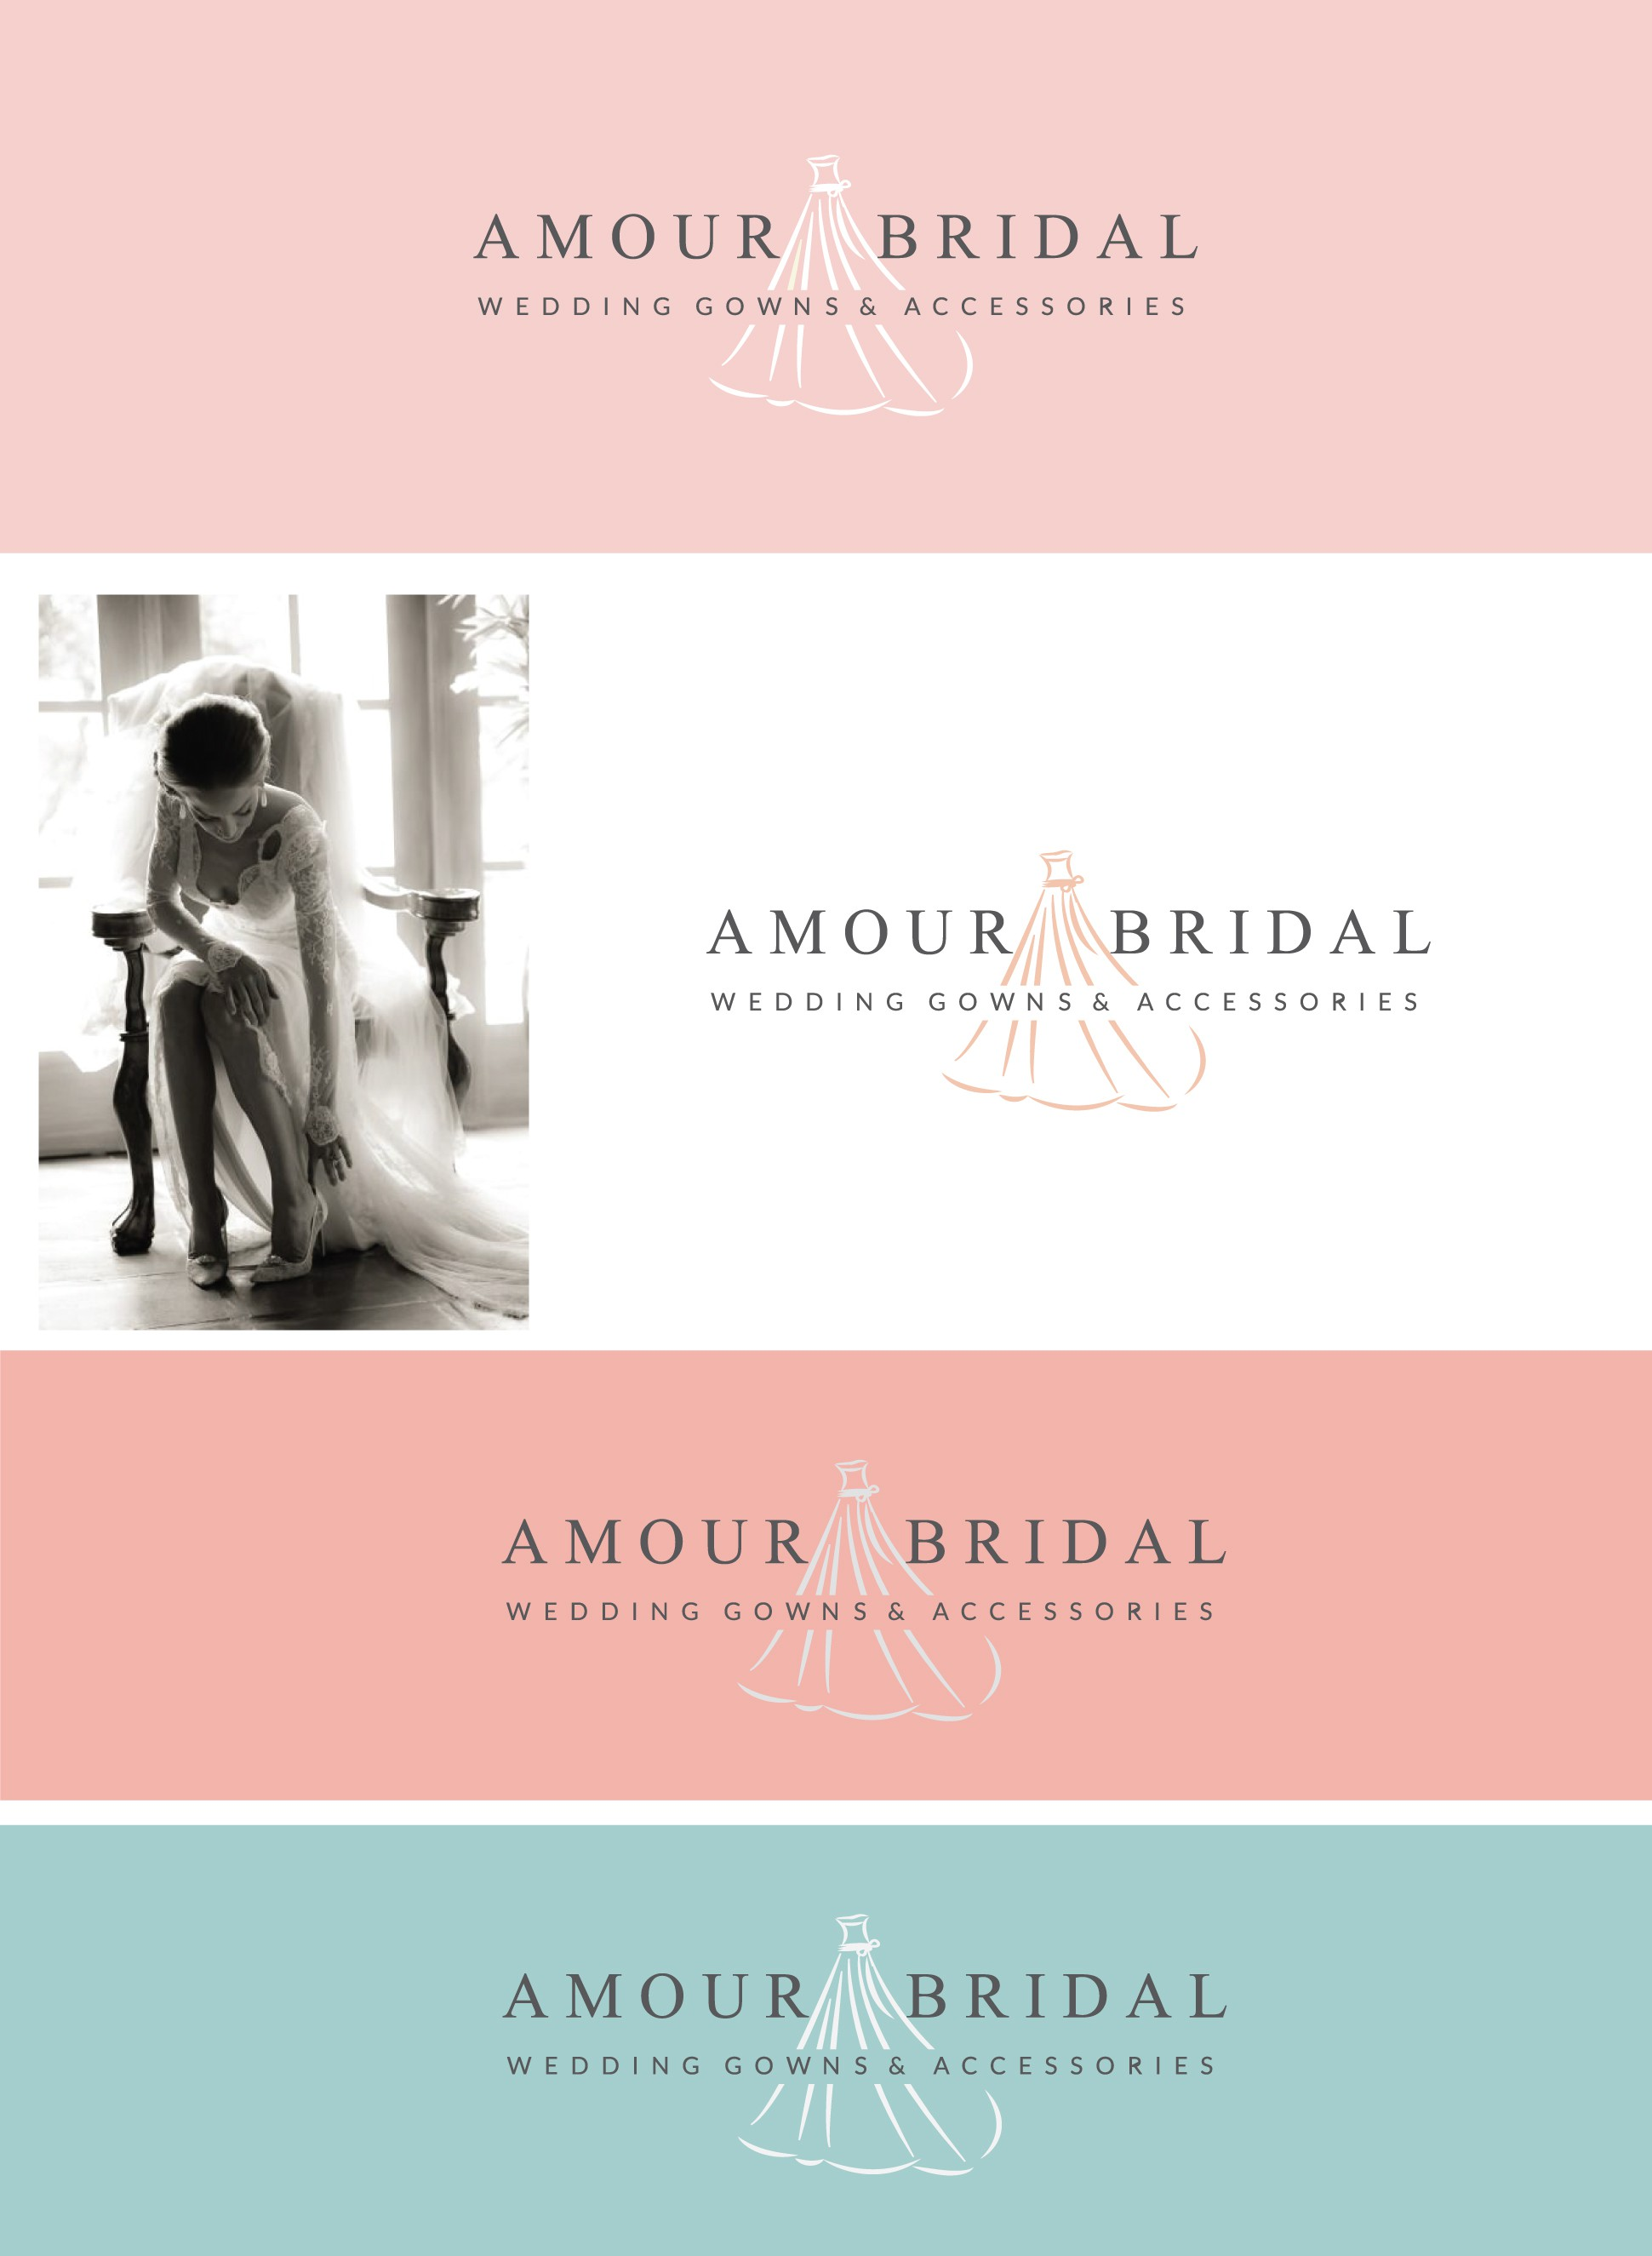 Help brides find the wedding dress of their dreams at Amour Bridal